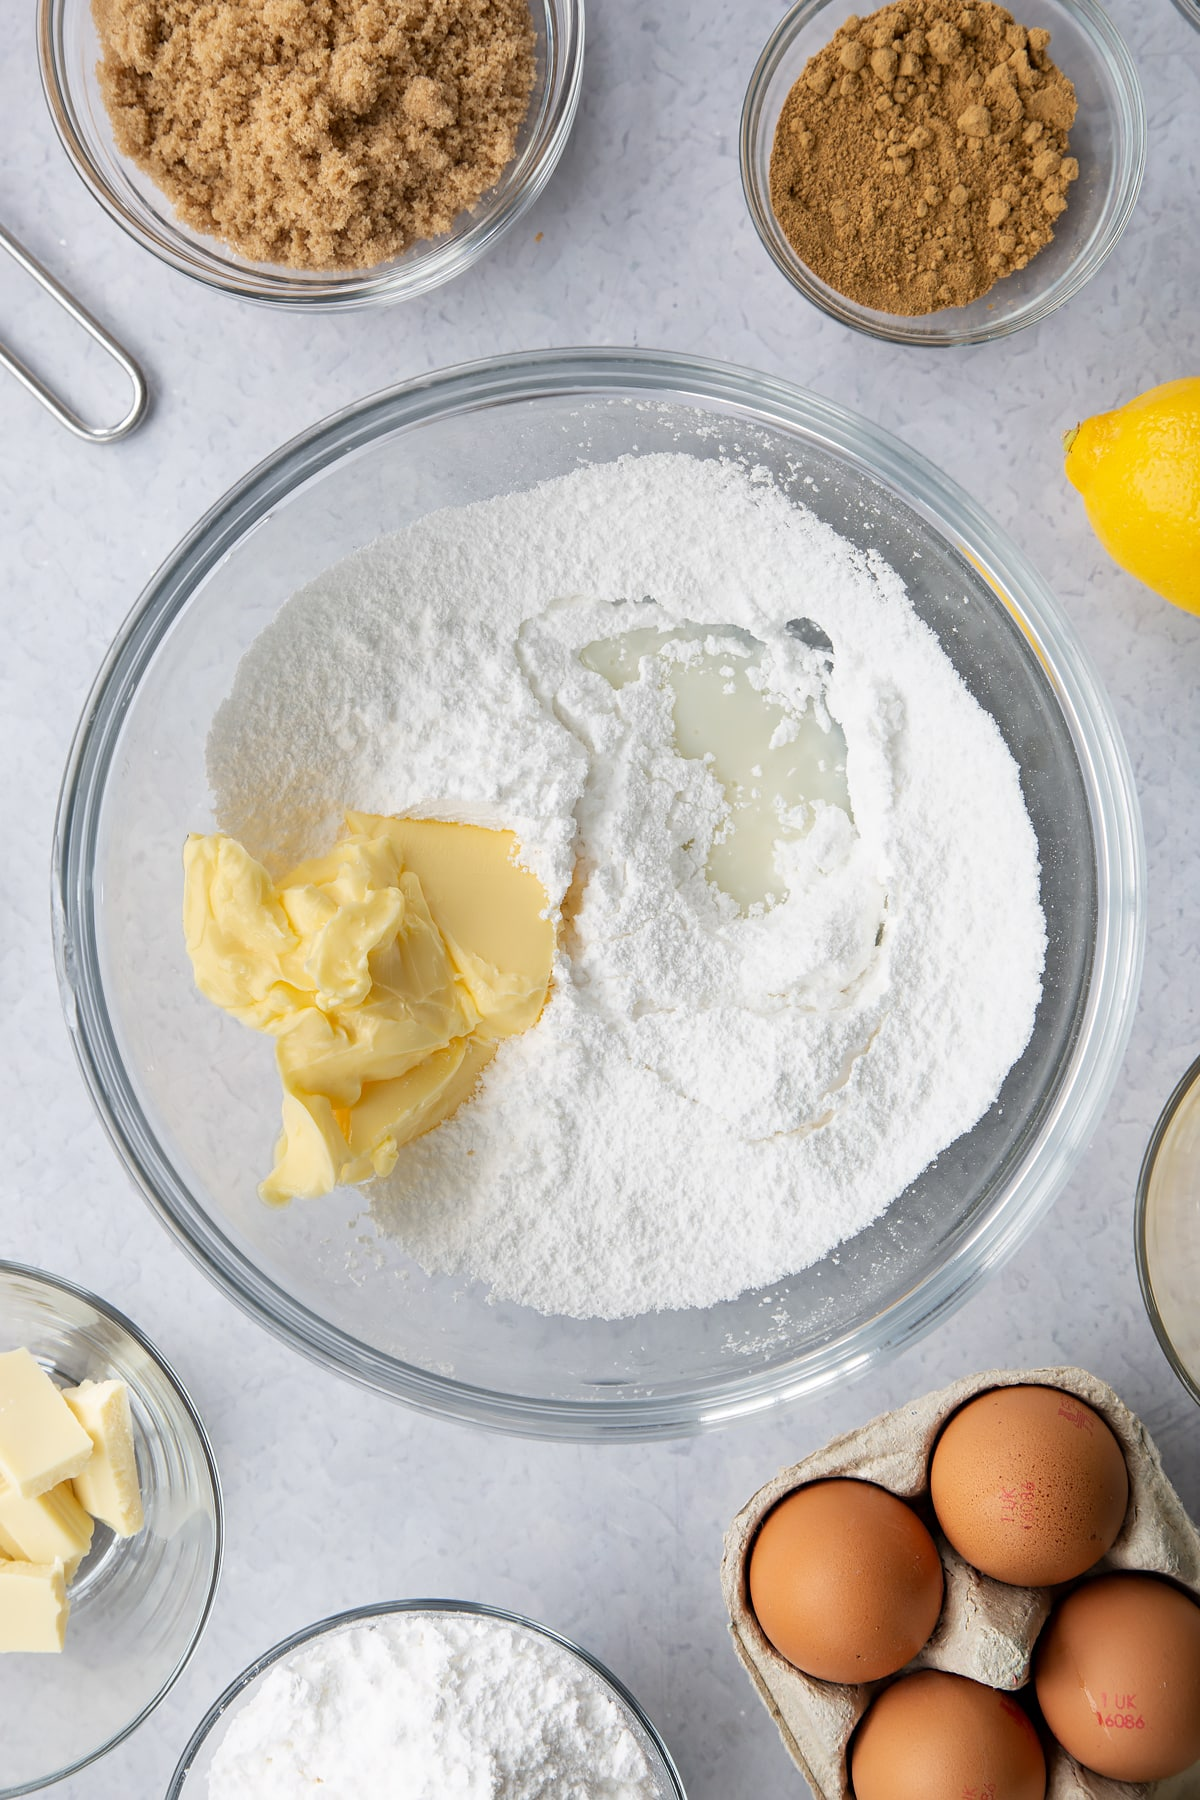 Icing sugar, butter and milk in a glass mixing bowl. Ingredients to make Gingerbread Swiss roll surround the bowl.